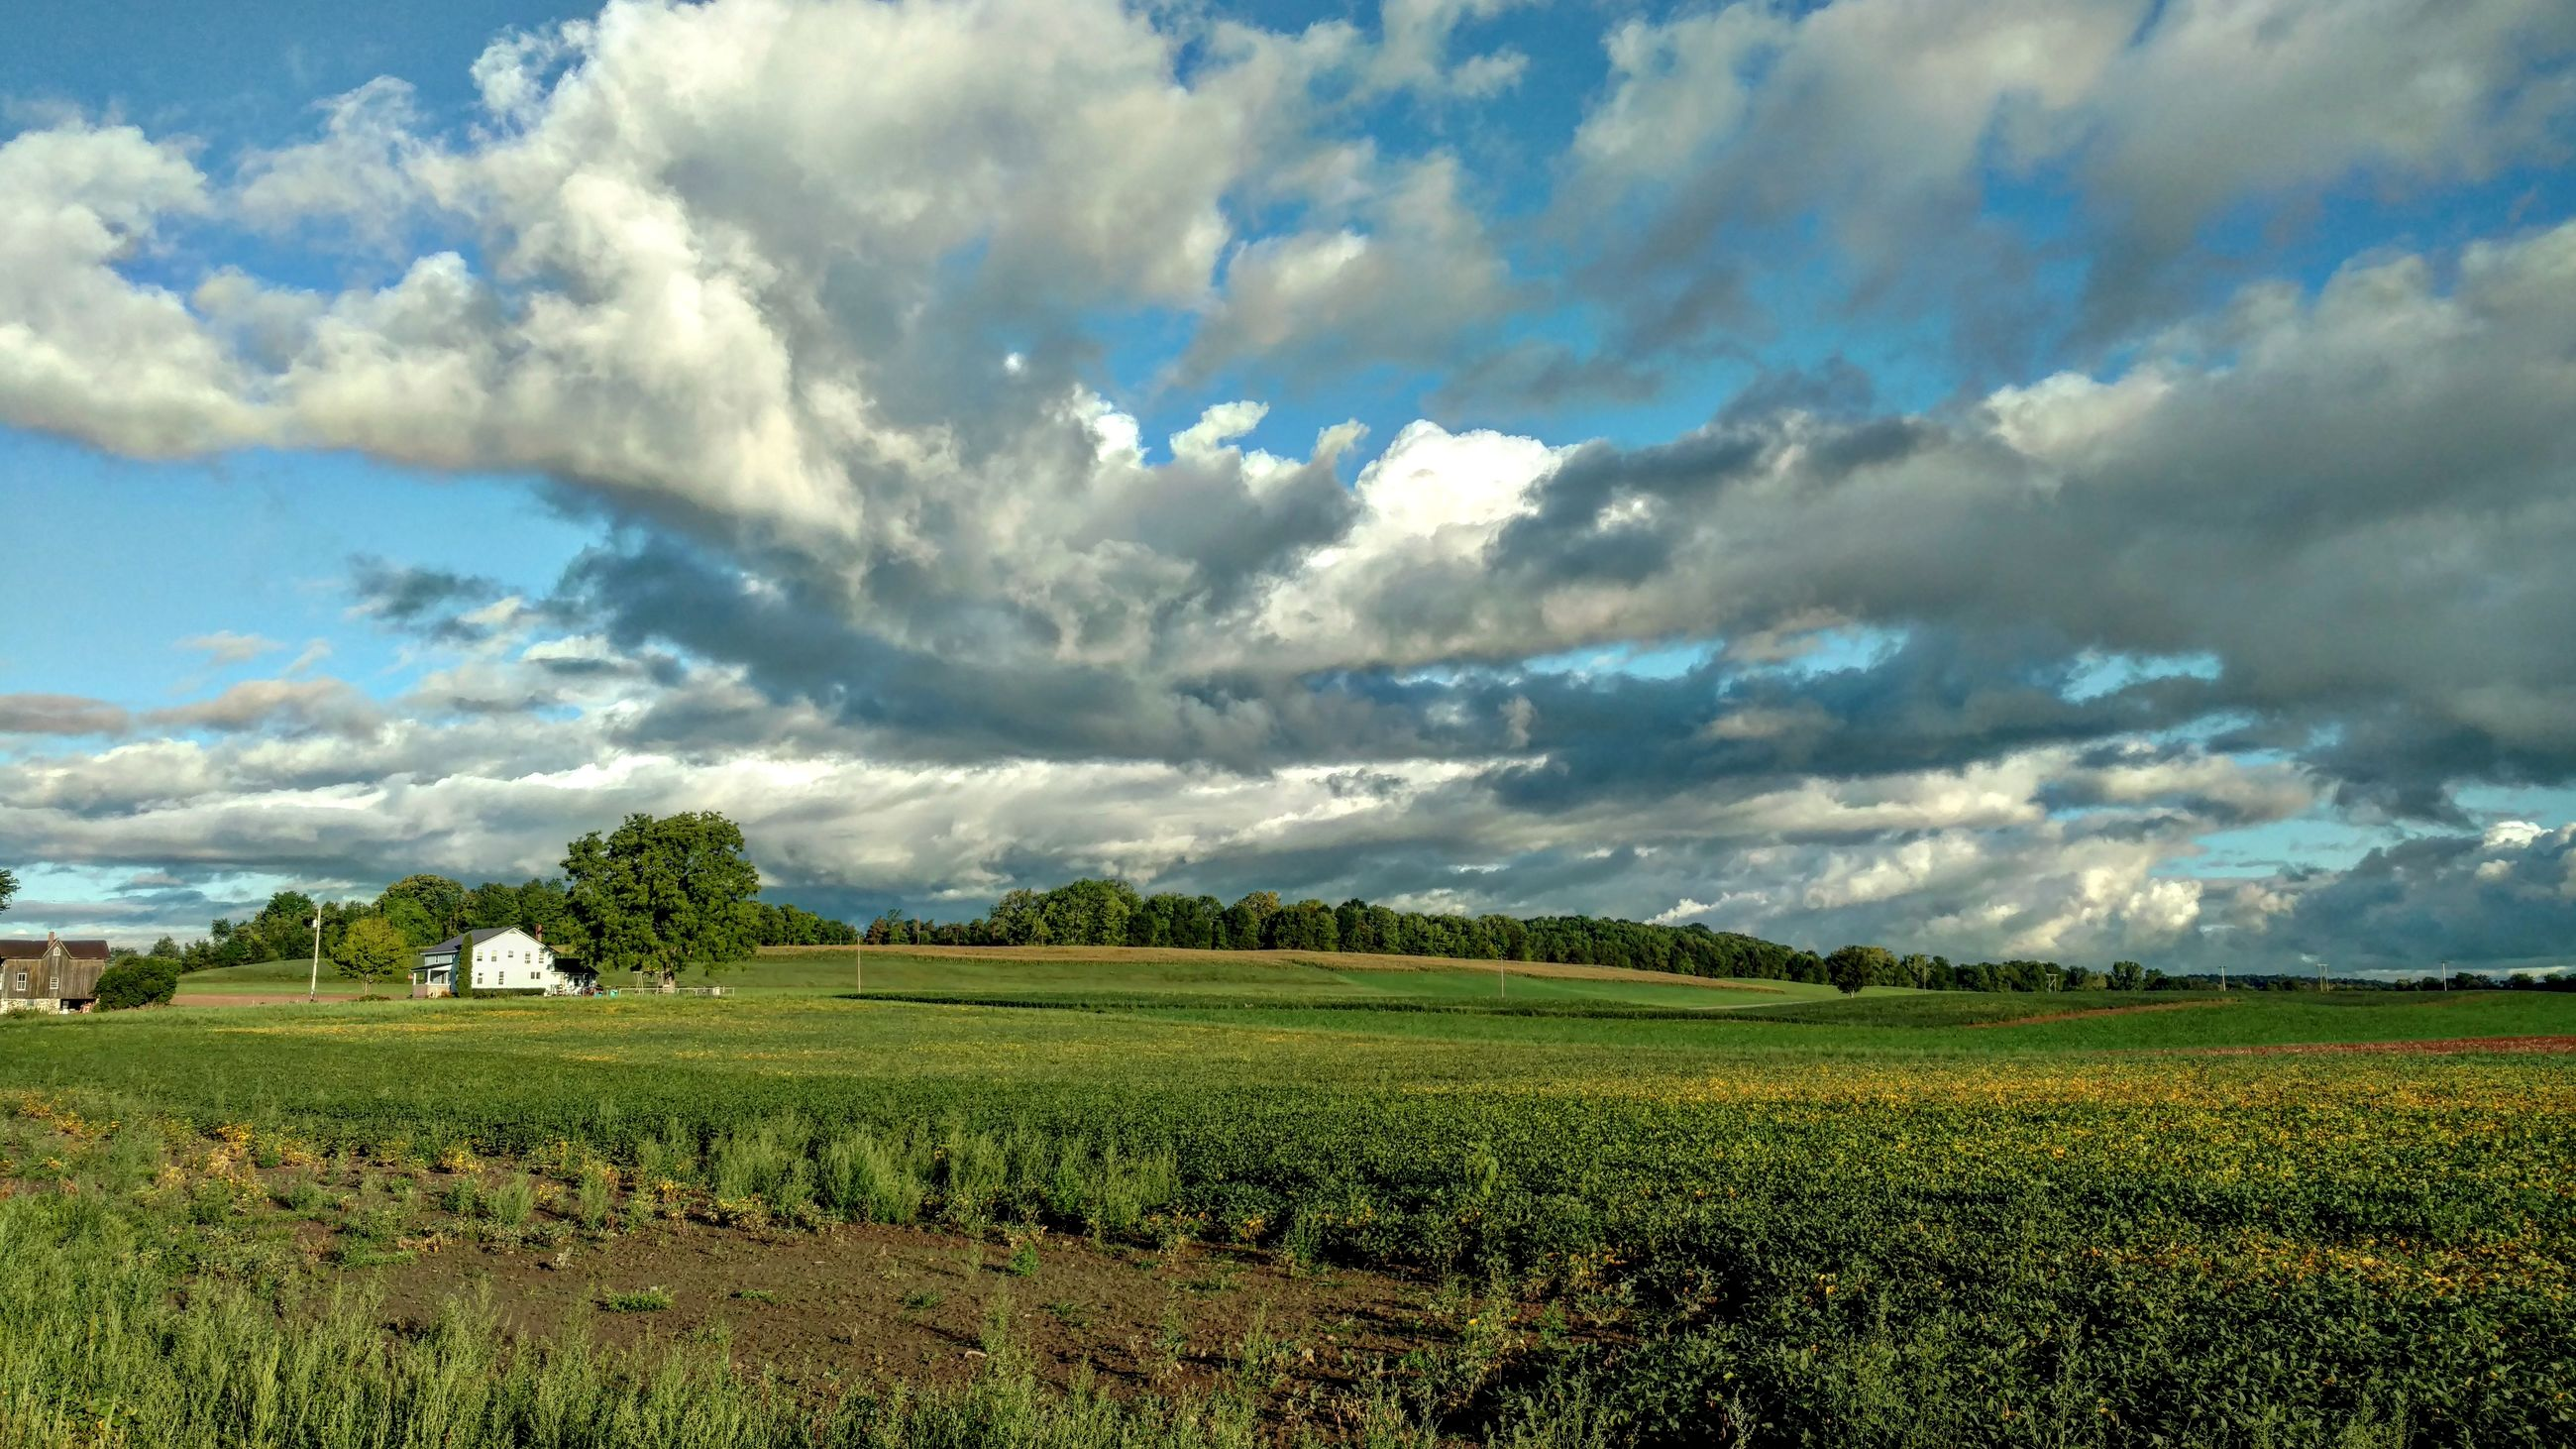 agriculture, field, landscape, rural scene, tranquil scene, scenics, farm, beauty in nature, tranquility, crop, growth, sky, cultivated land, nature, plant, cloud - sky, green color, cloudy, day, blue, plantation, outdoors, no people, cumulus cloud, green, solitude, cultivated, farmland, non-urban scene, agricultural, grass area